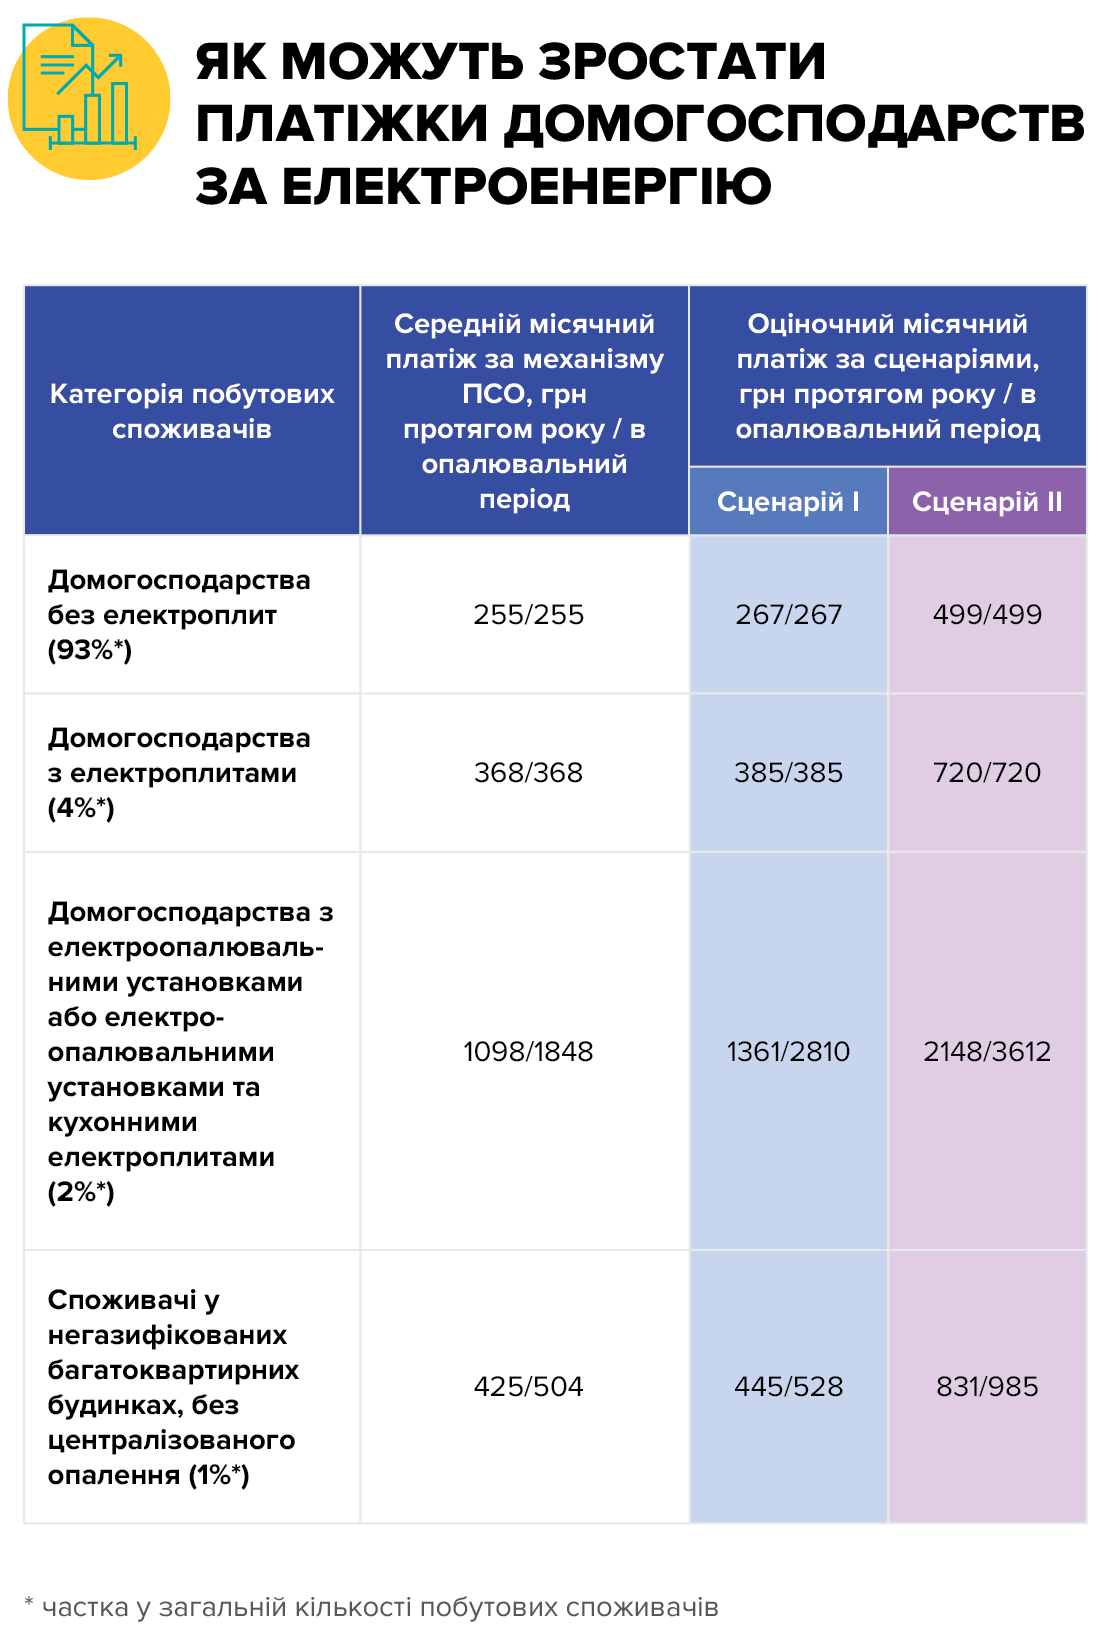 Without PSO: scenarios of changing the electricity price for Ukrainians